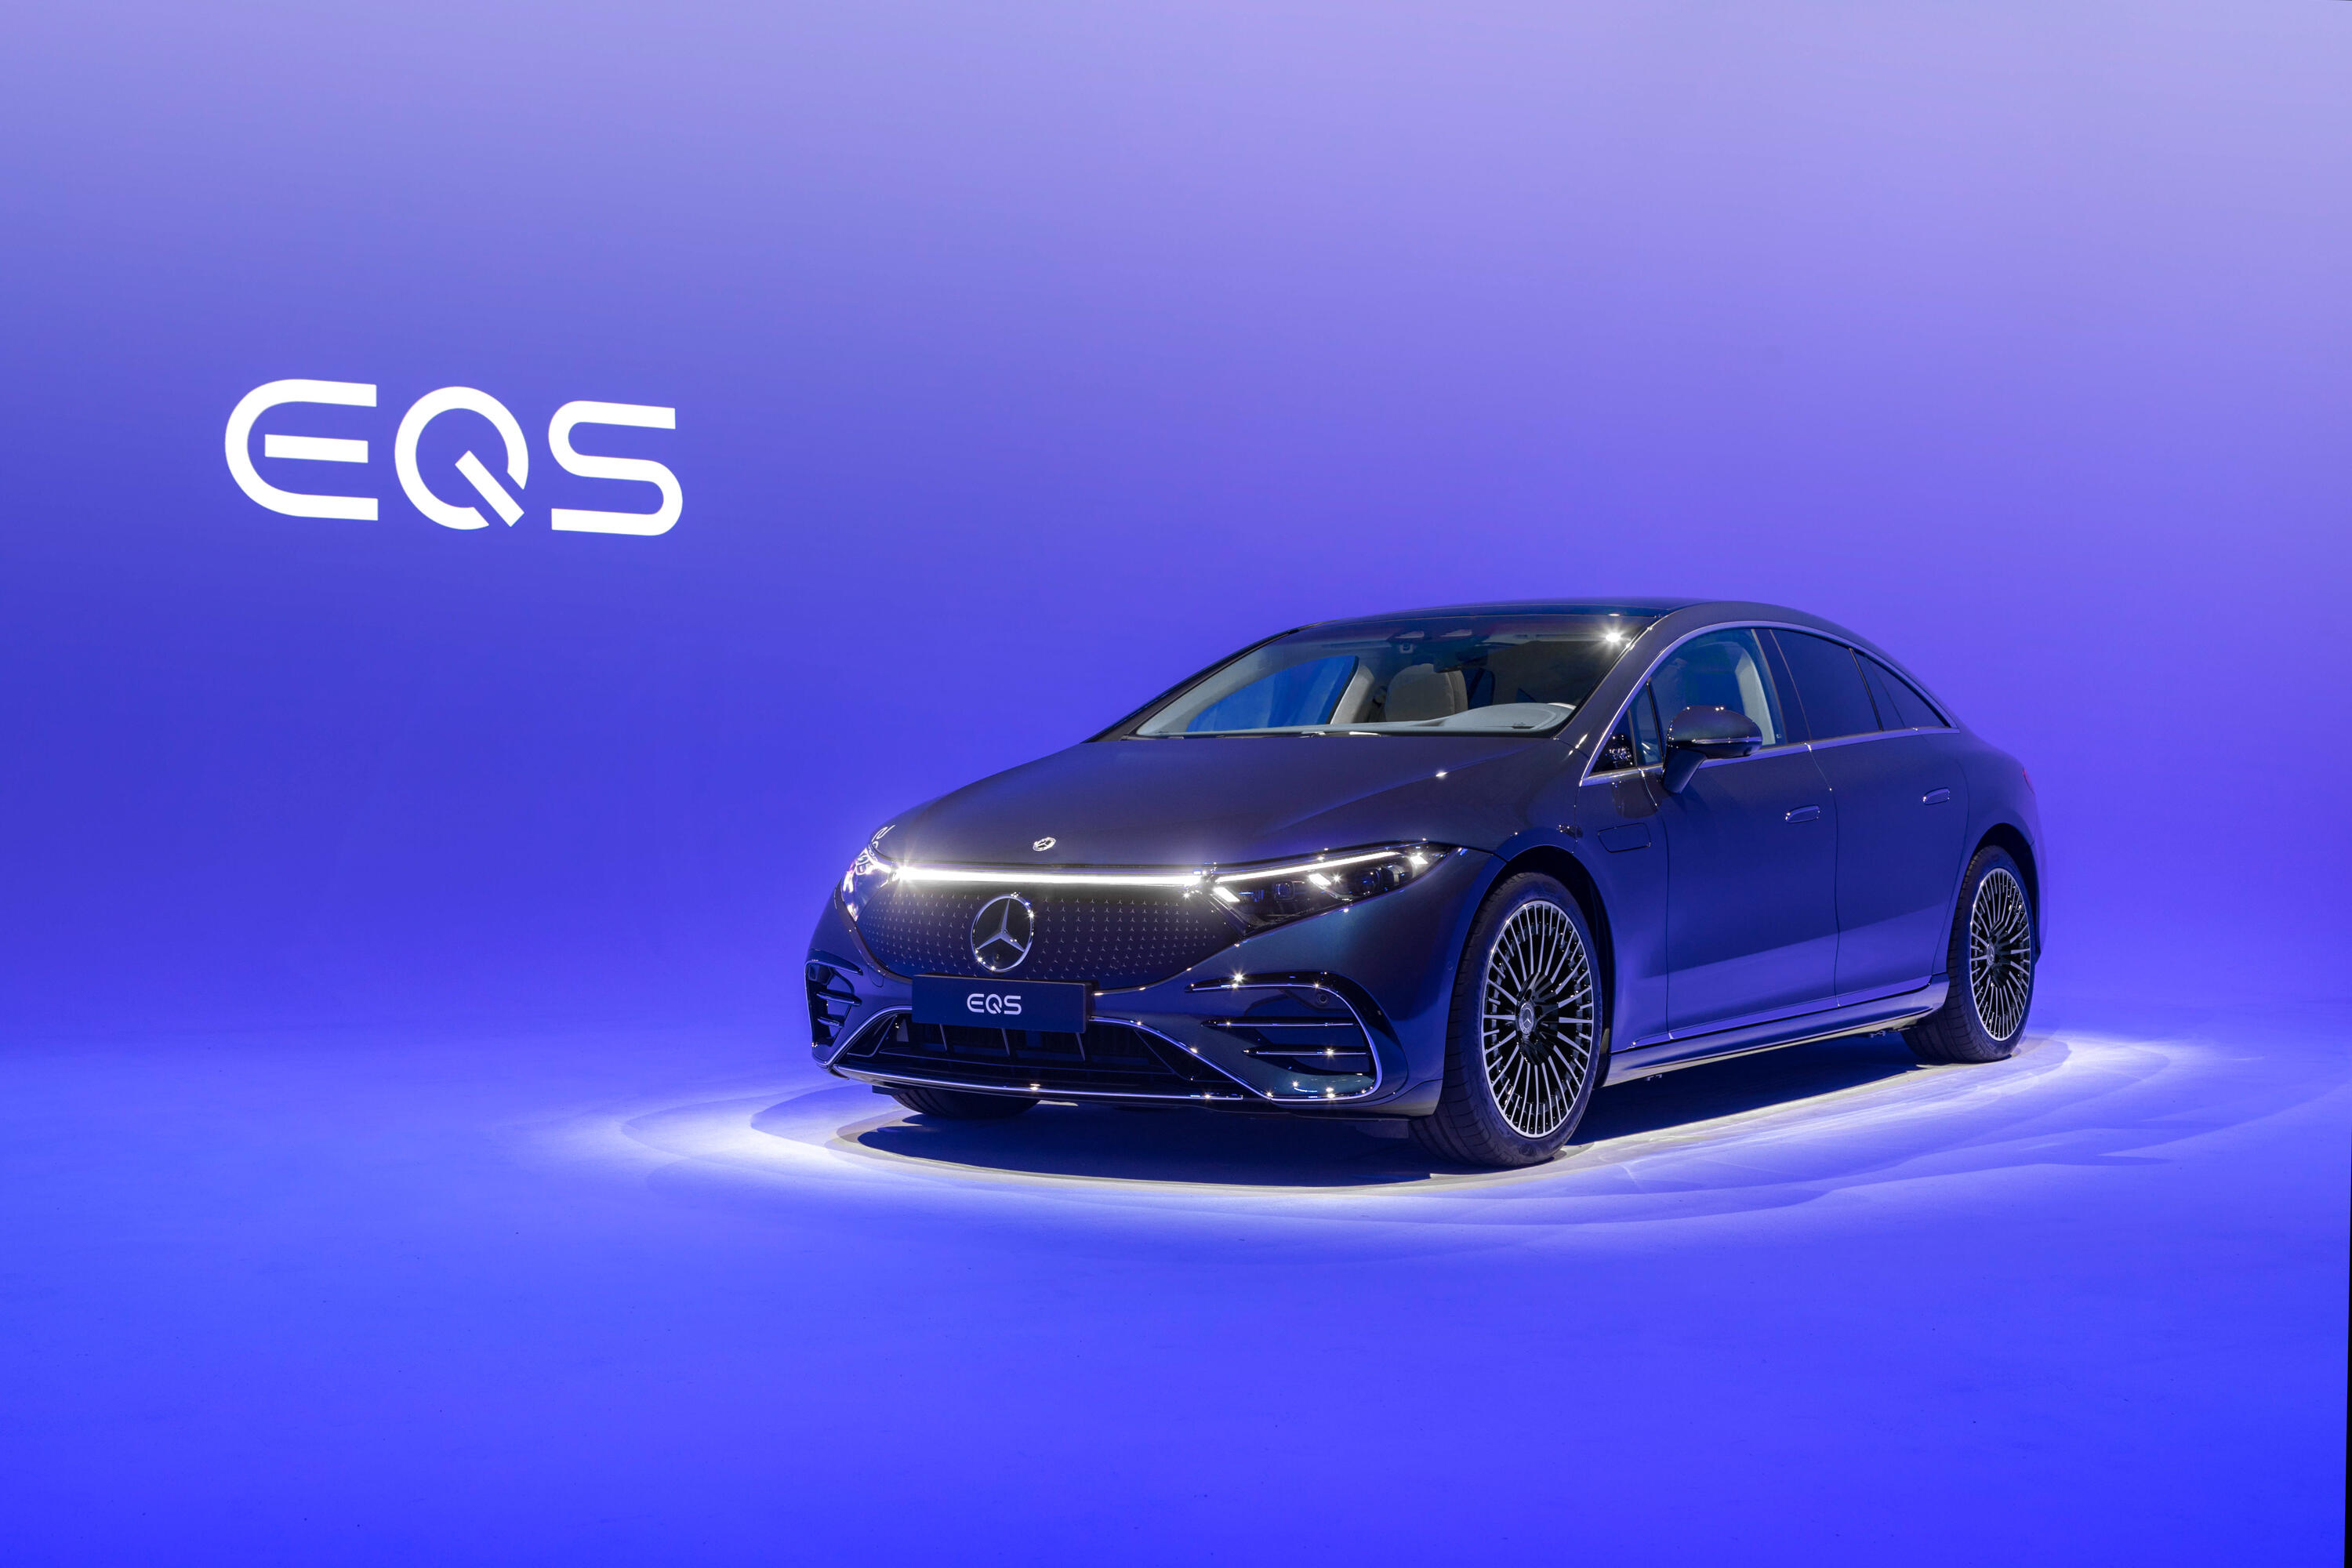 2022 Mercedes-Benz EQS Edition One - electric